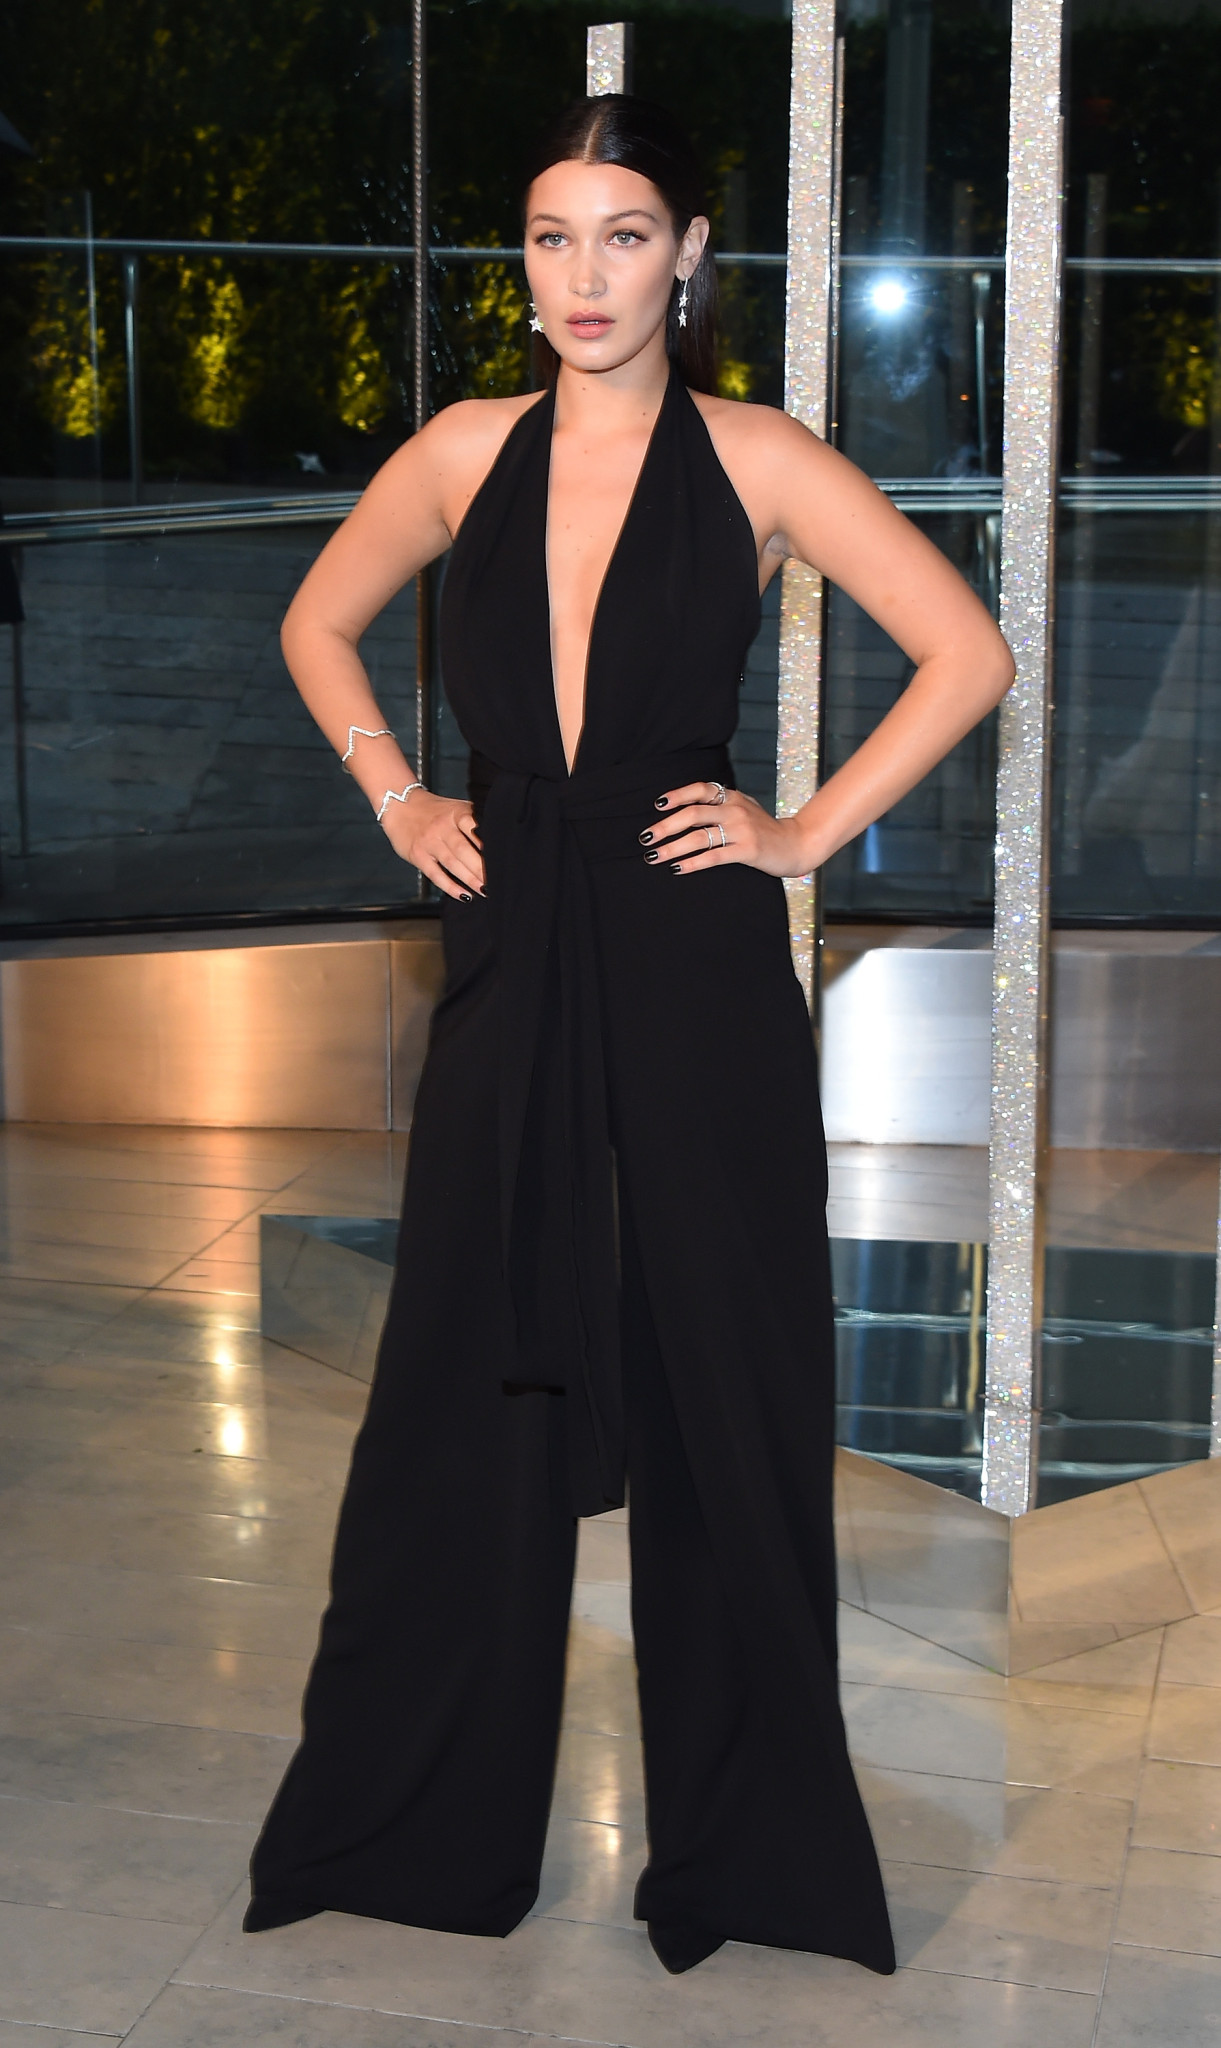 attends the 2015 CFDA Fashion Awards at Alice Tully Hall at Lincoln Center on June 1, 2015 in New York City.